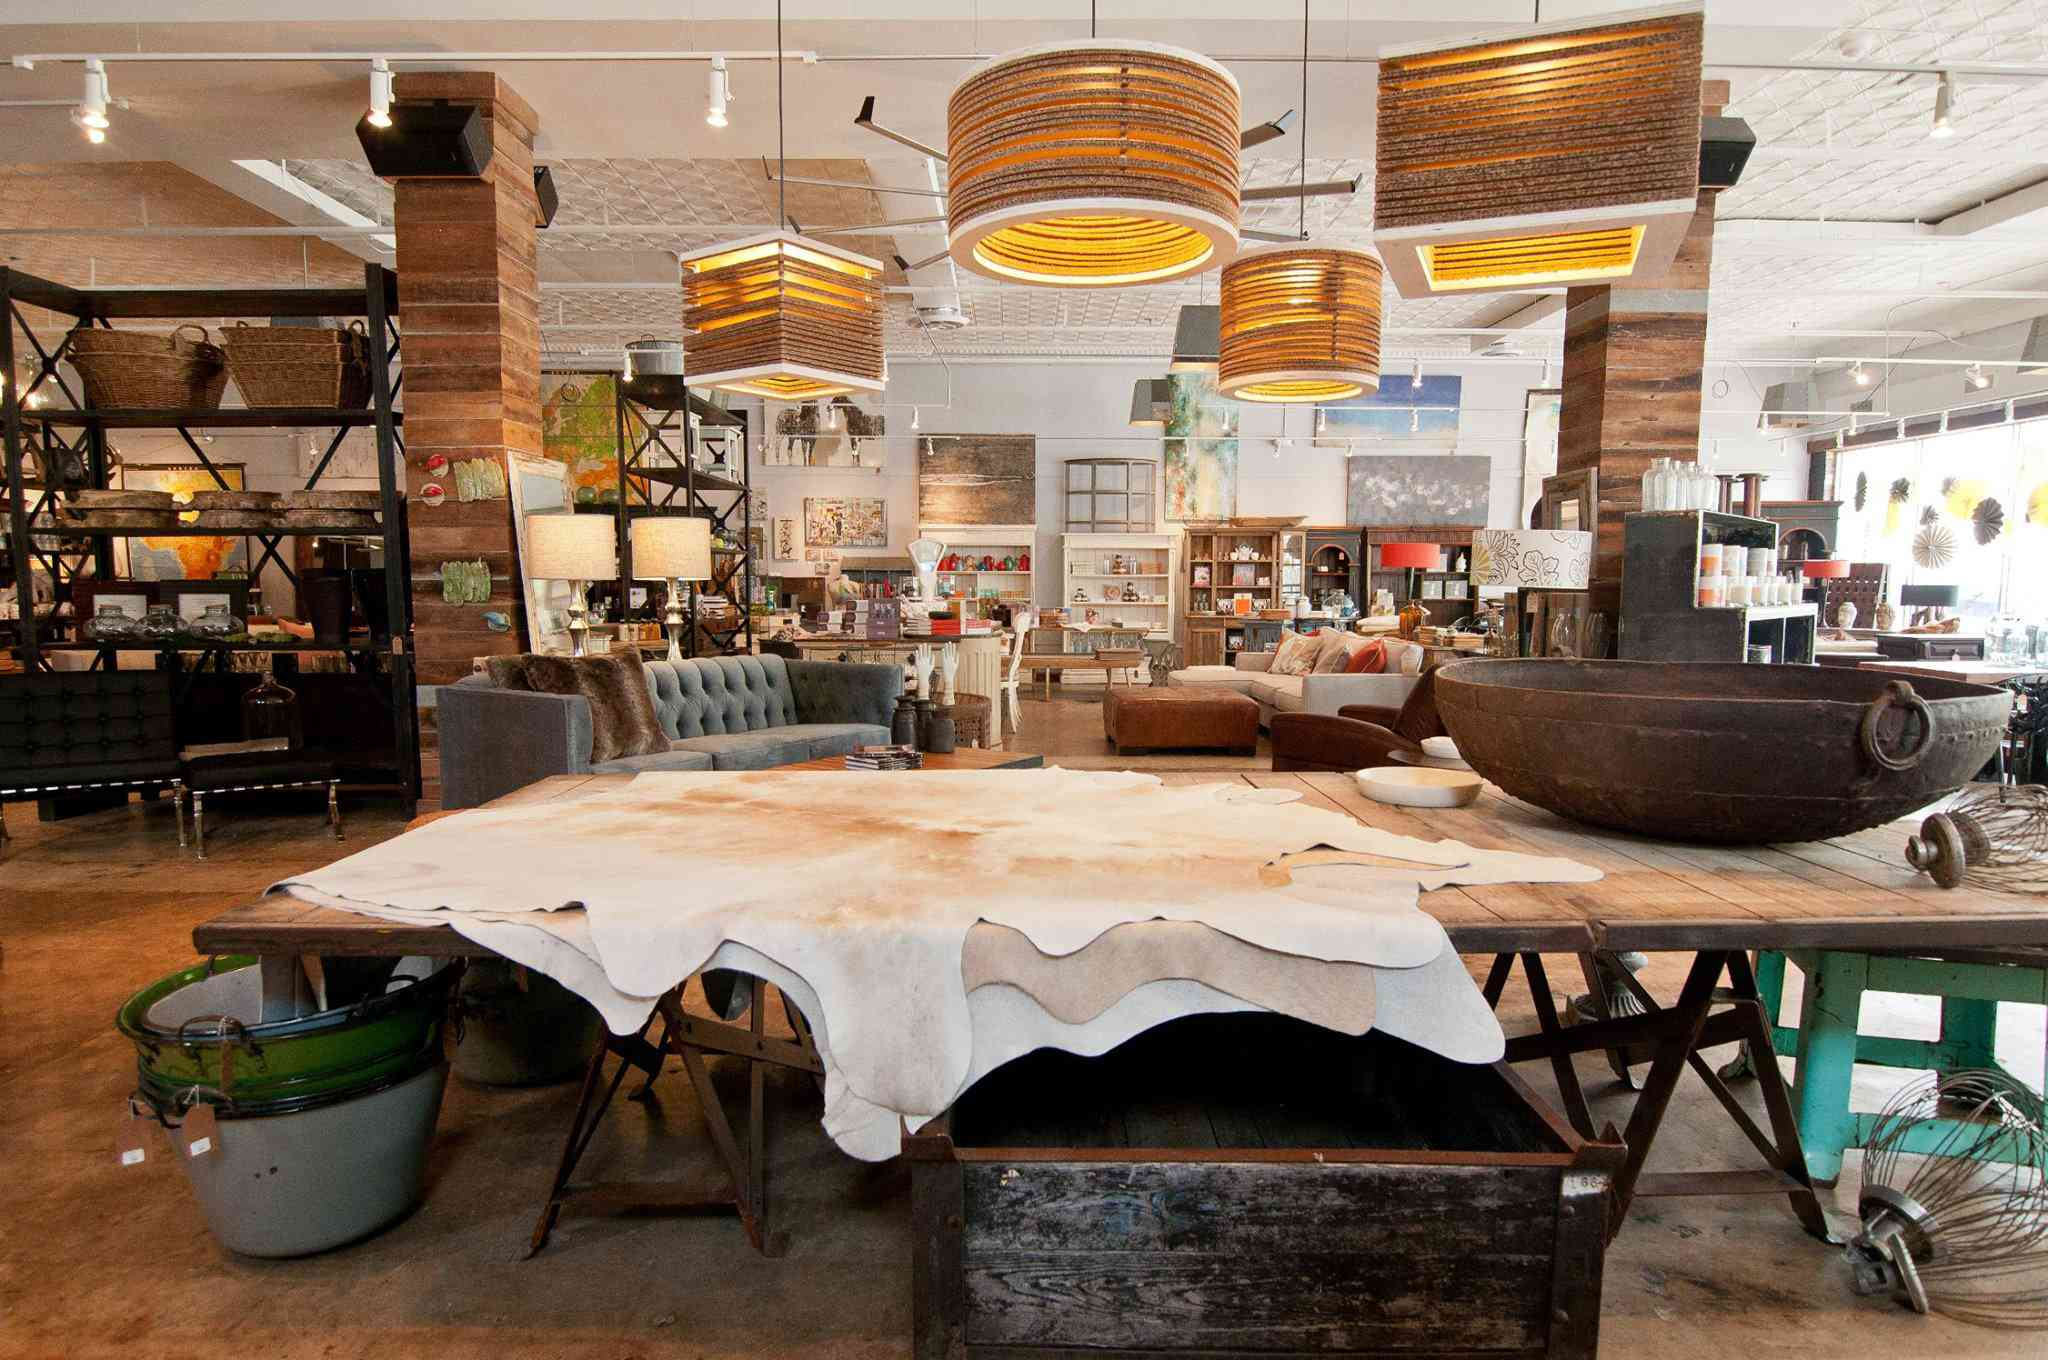 home good store with tanned hides, sofas, assorted light fixtures and more